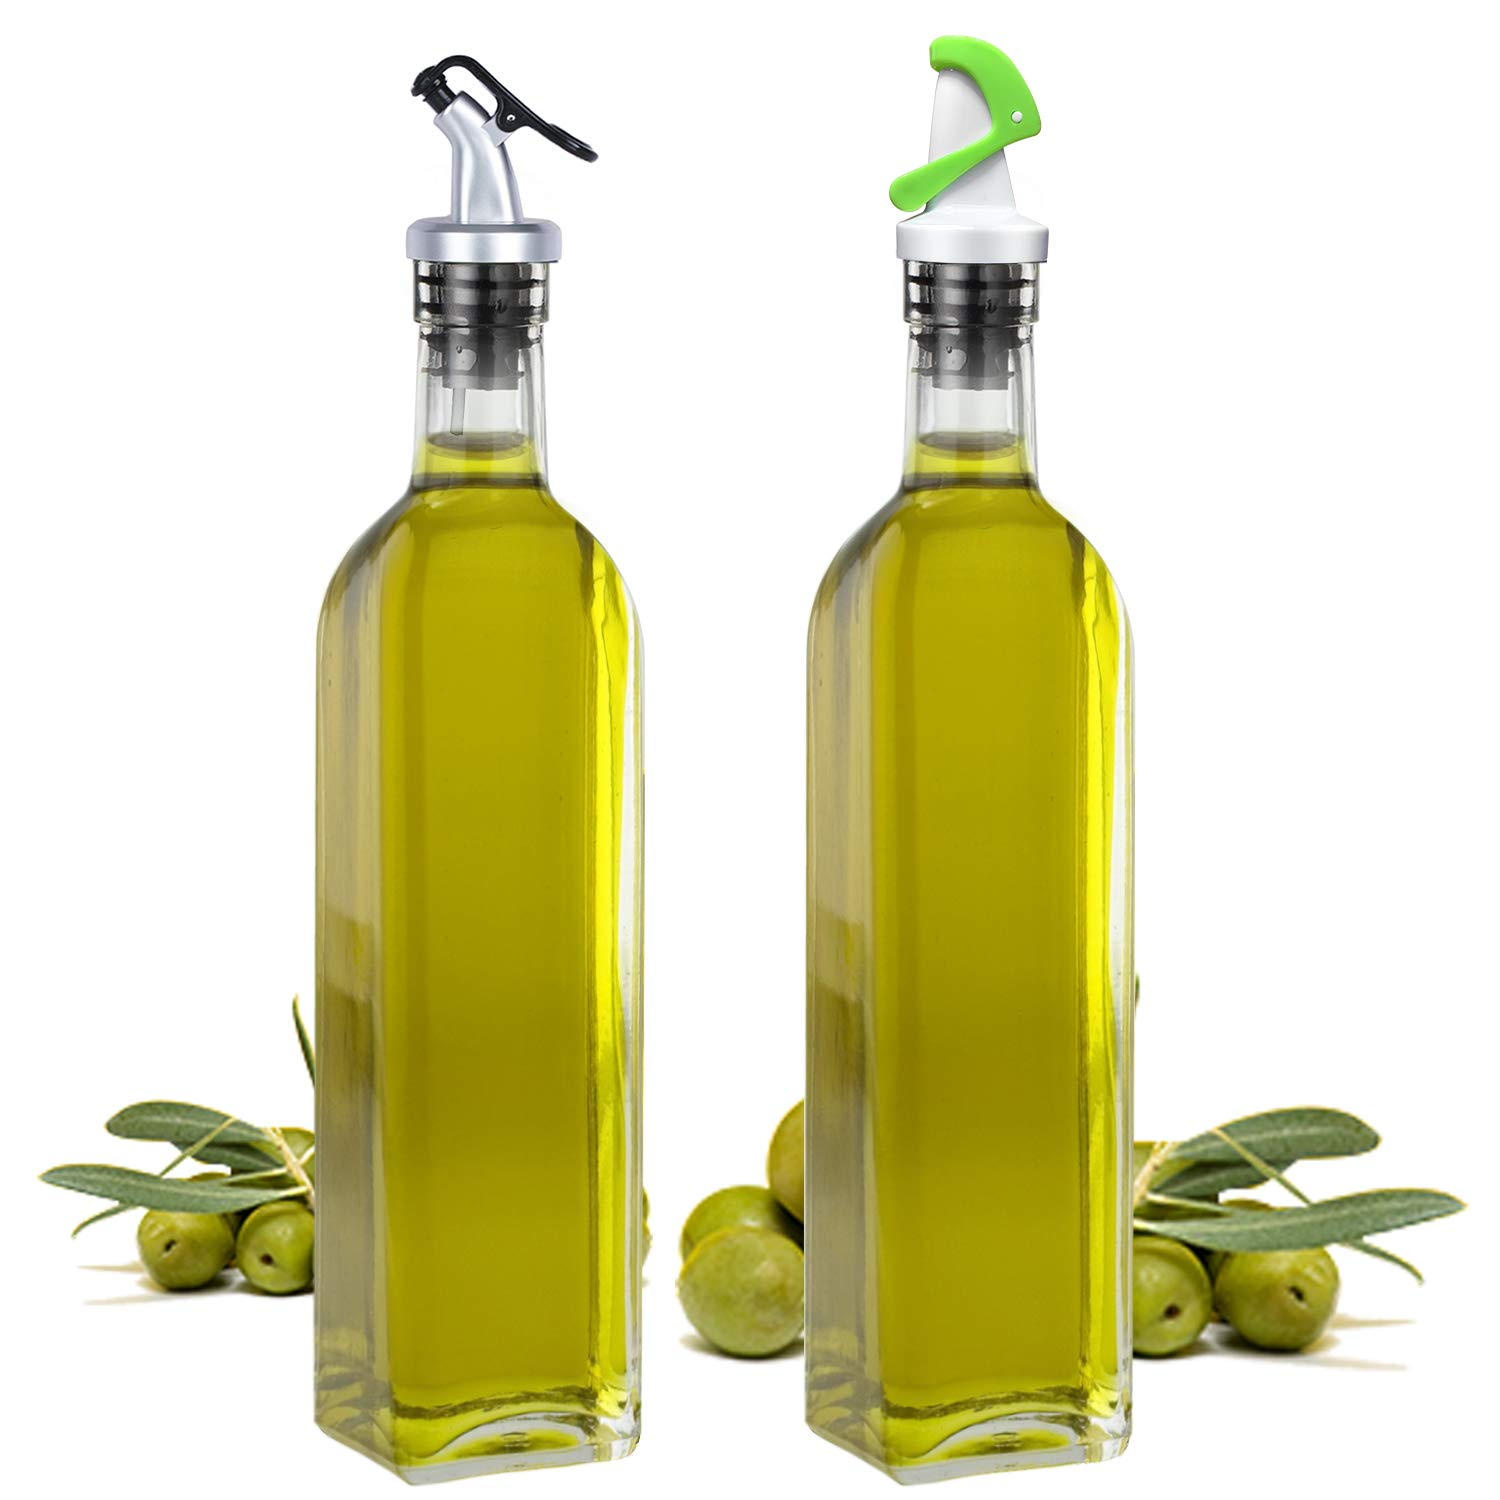 2 Pack 16.5oz Glass Olive Oil Bottle Set,with Stainless Steel Rack and 2 Condiment bottles Set, Elegant Life Vinegar Cruet Bottle Set (2 Kinds of Oil Dispensing Pour Spouts for Easy Pouring) by Elegant Life